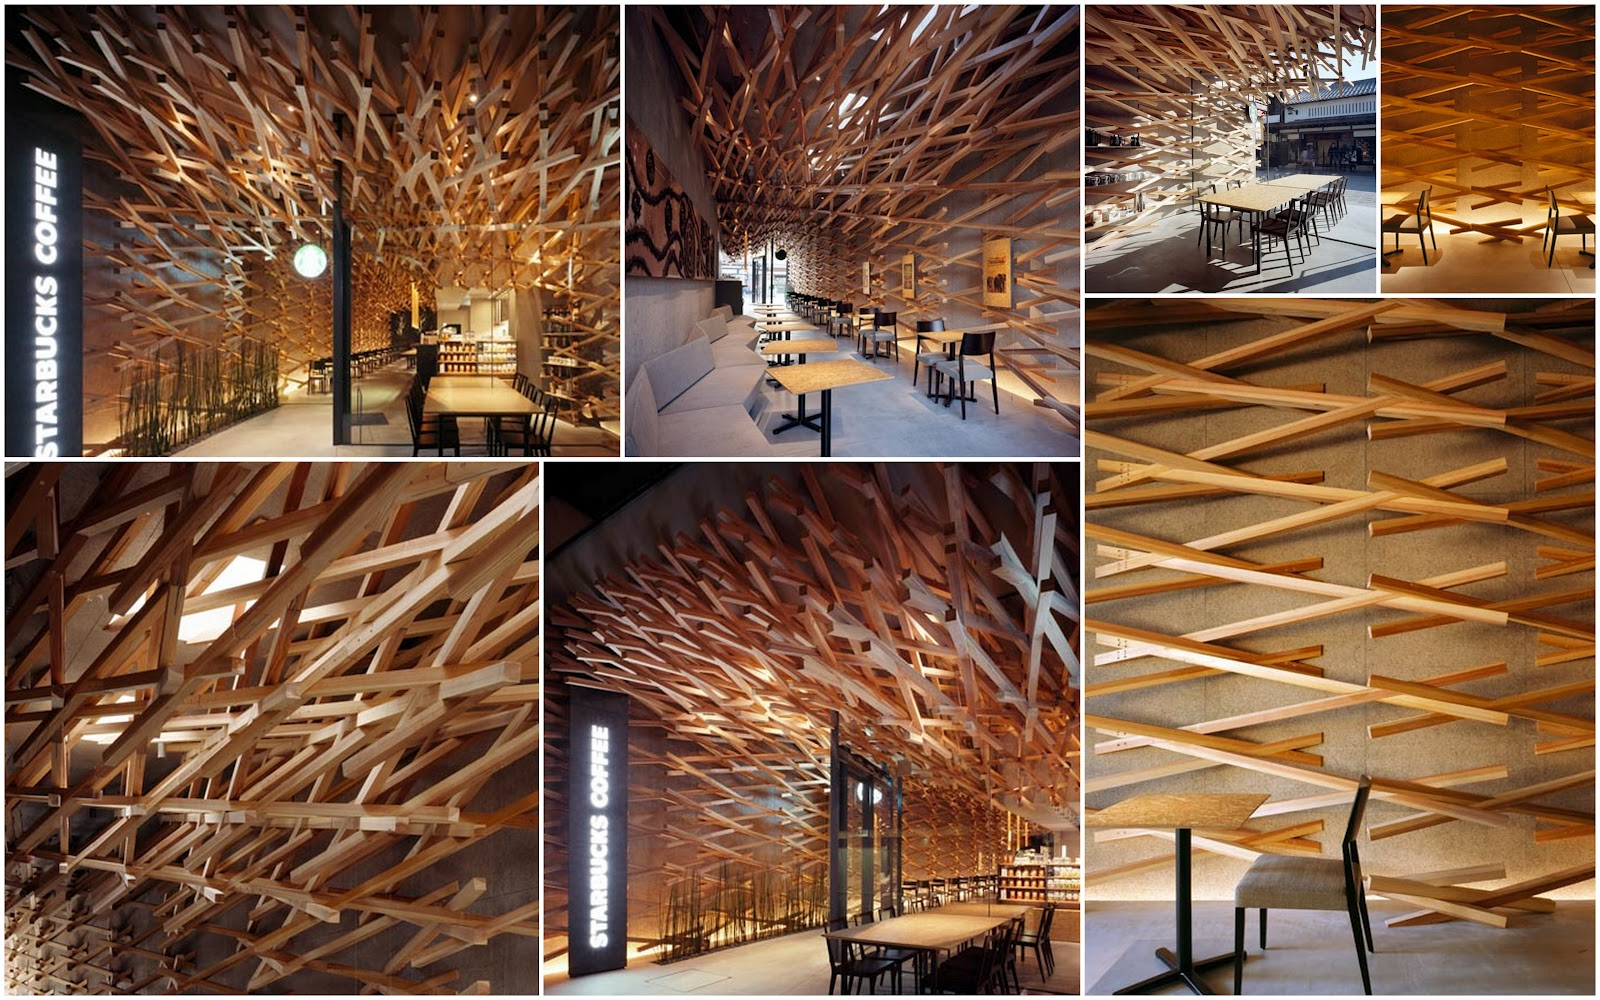 Starbucks coffee Japan by Kengo Kuma